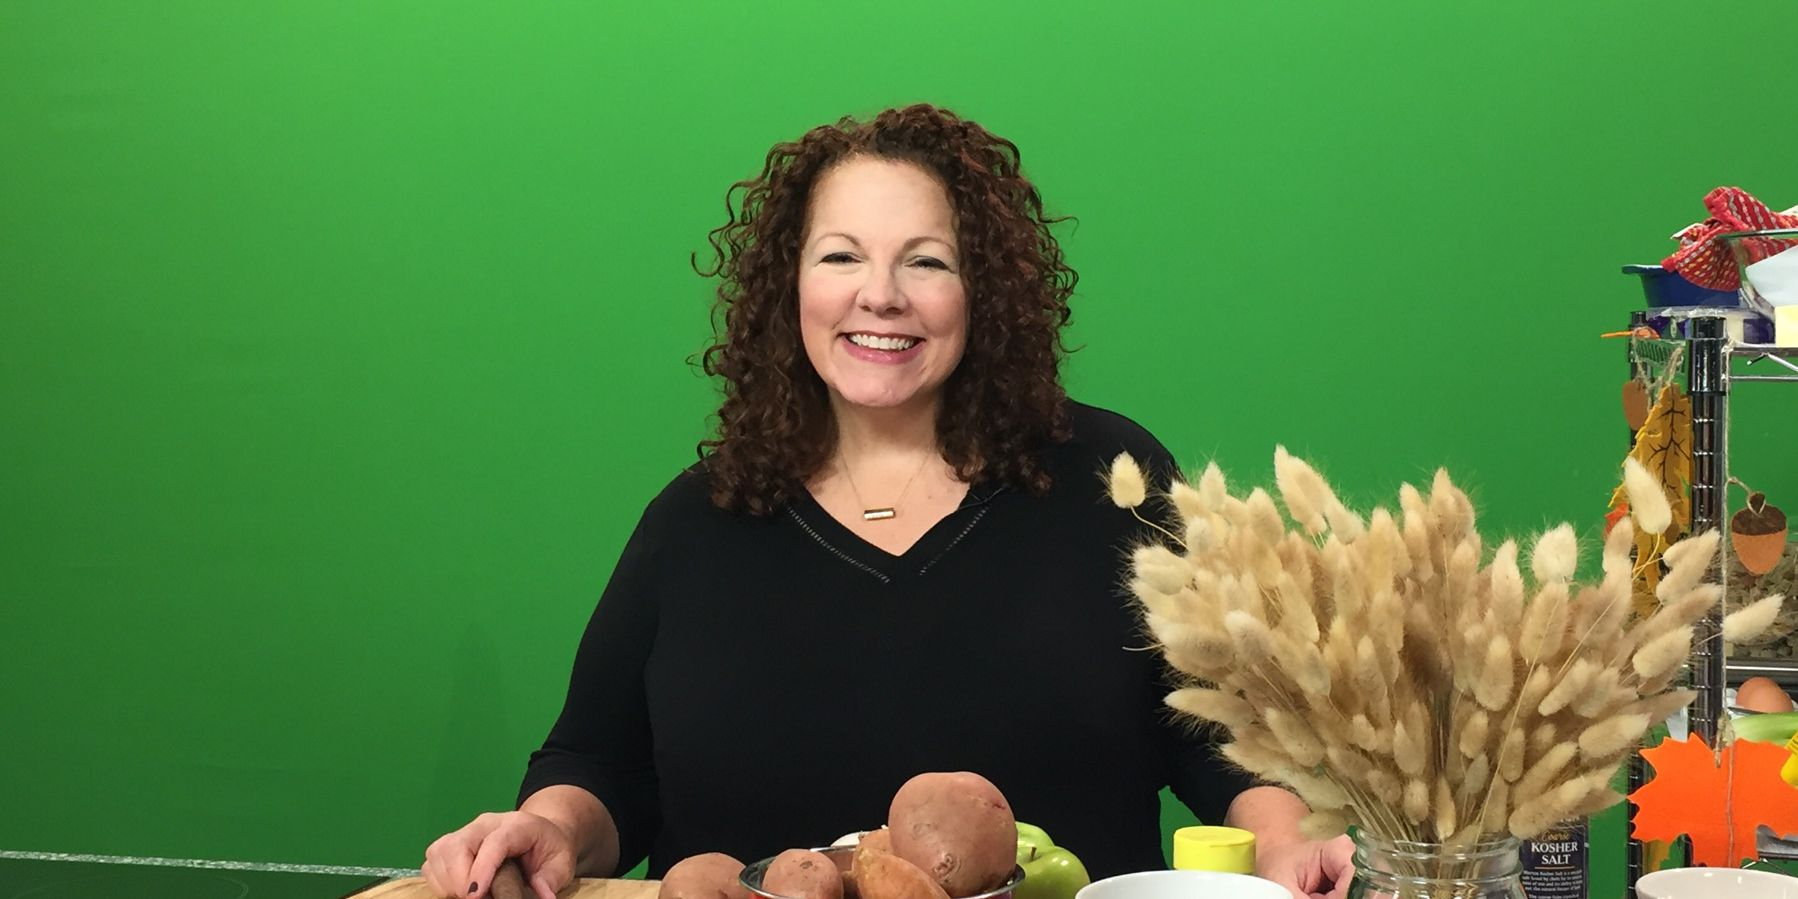 East Texas Kitchen: Three recipes from Mama Steph you'll want to add to your holiday menu